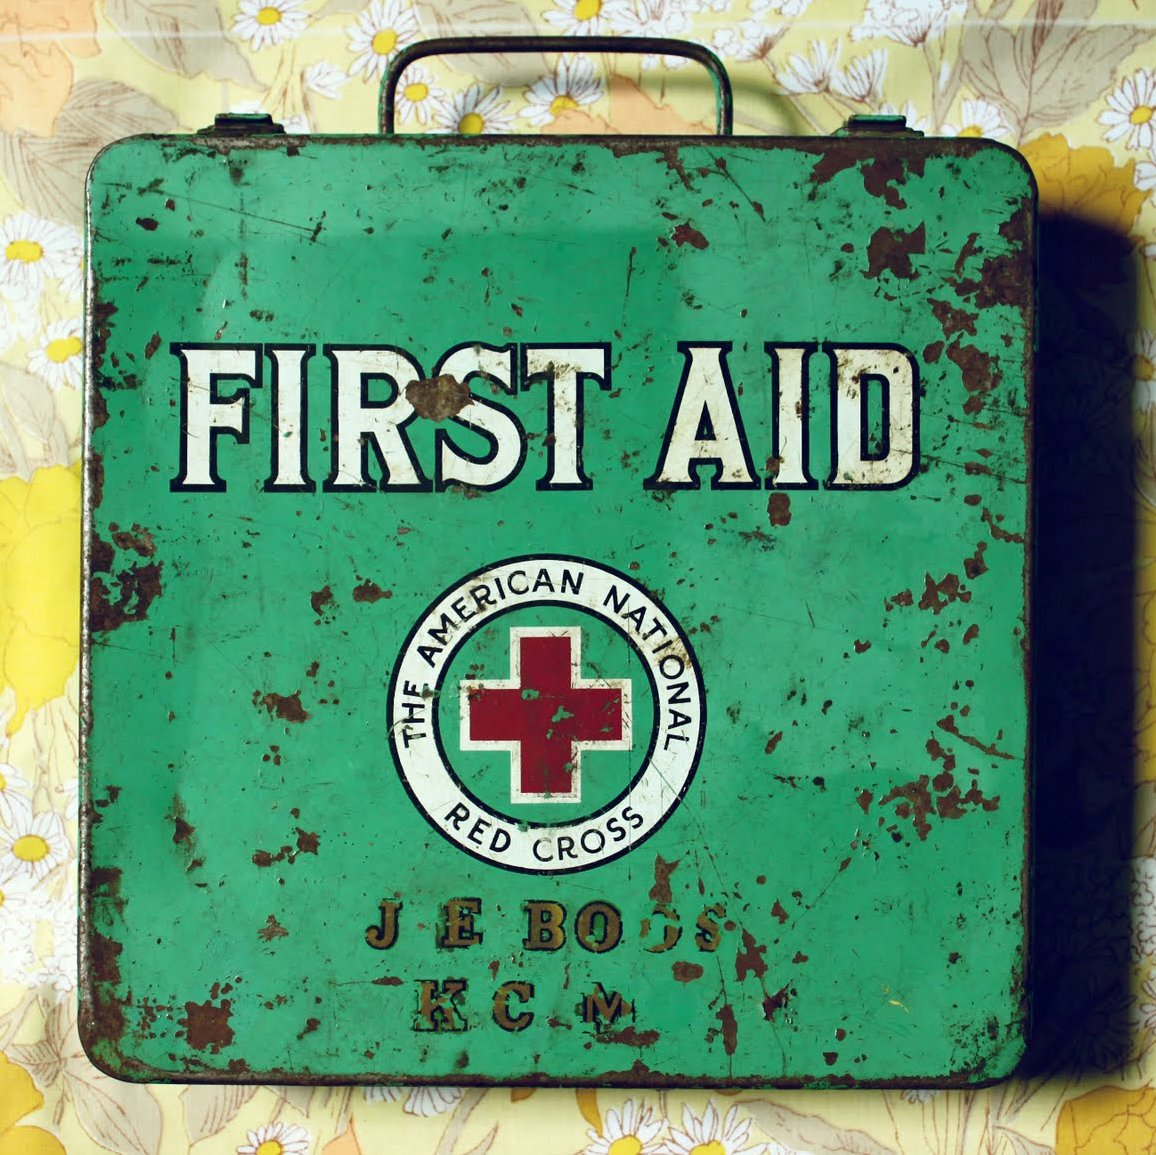 off road motorcycle first aid kit